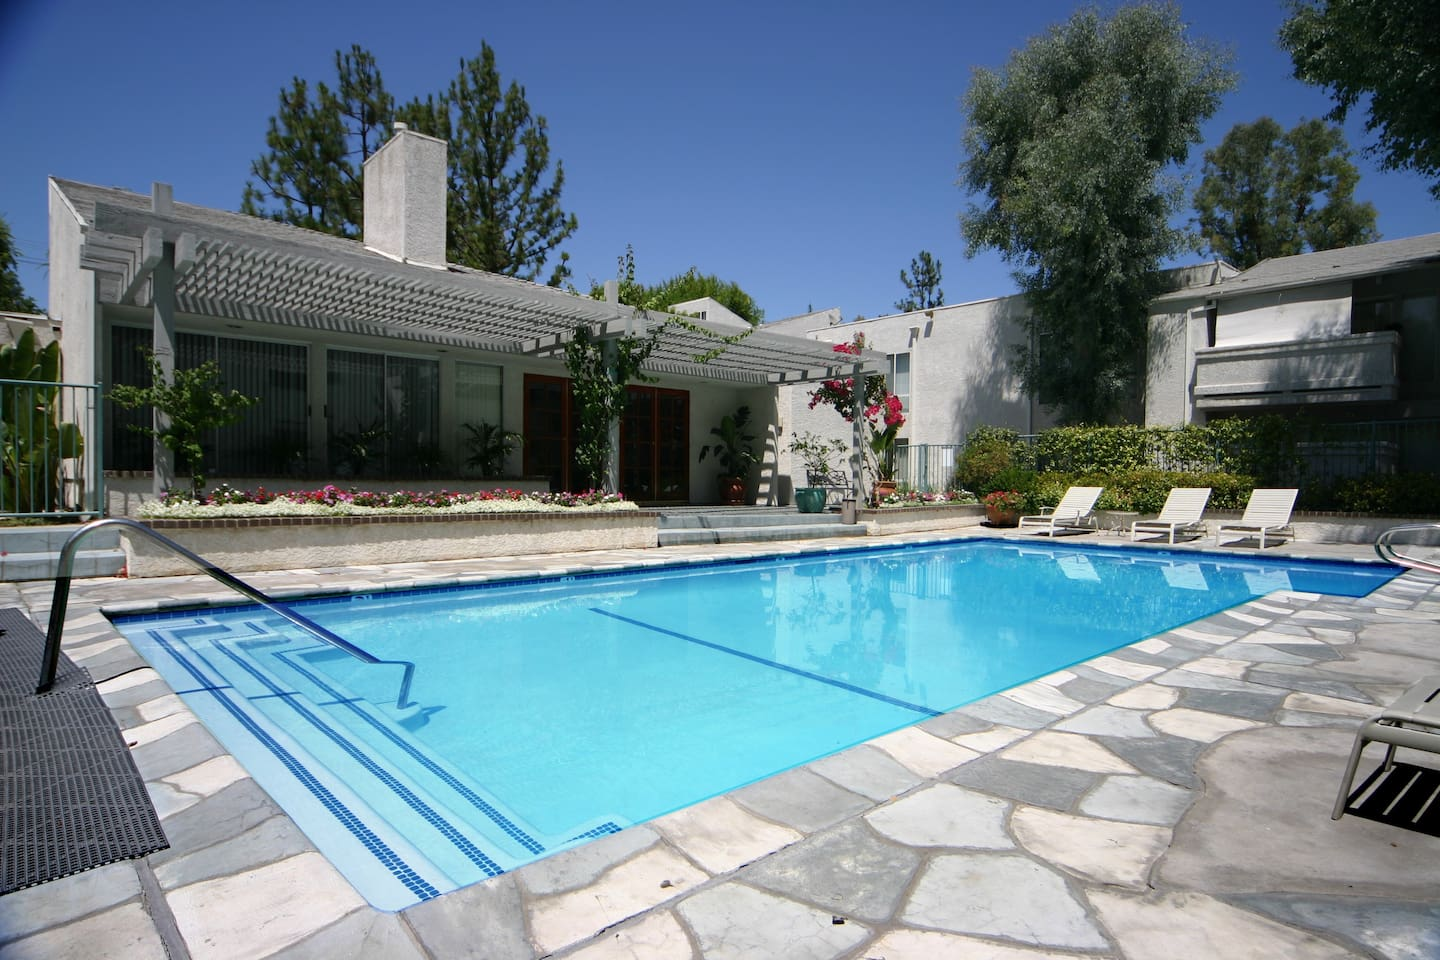 Typical Sunny California Weather. Swimming Pool. Club House And Billiard Table Inside.